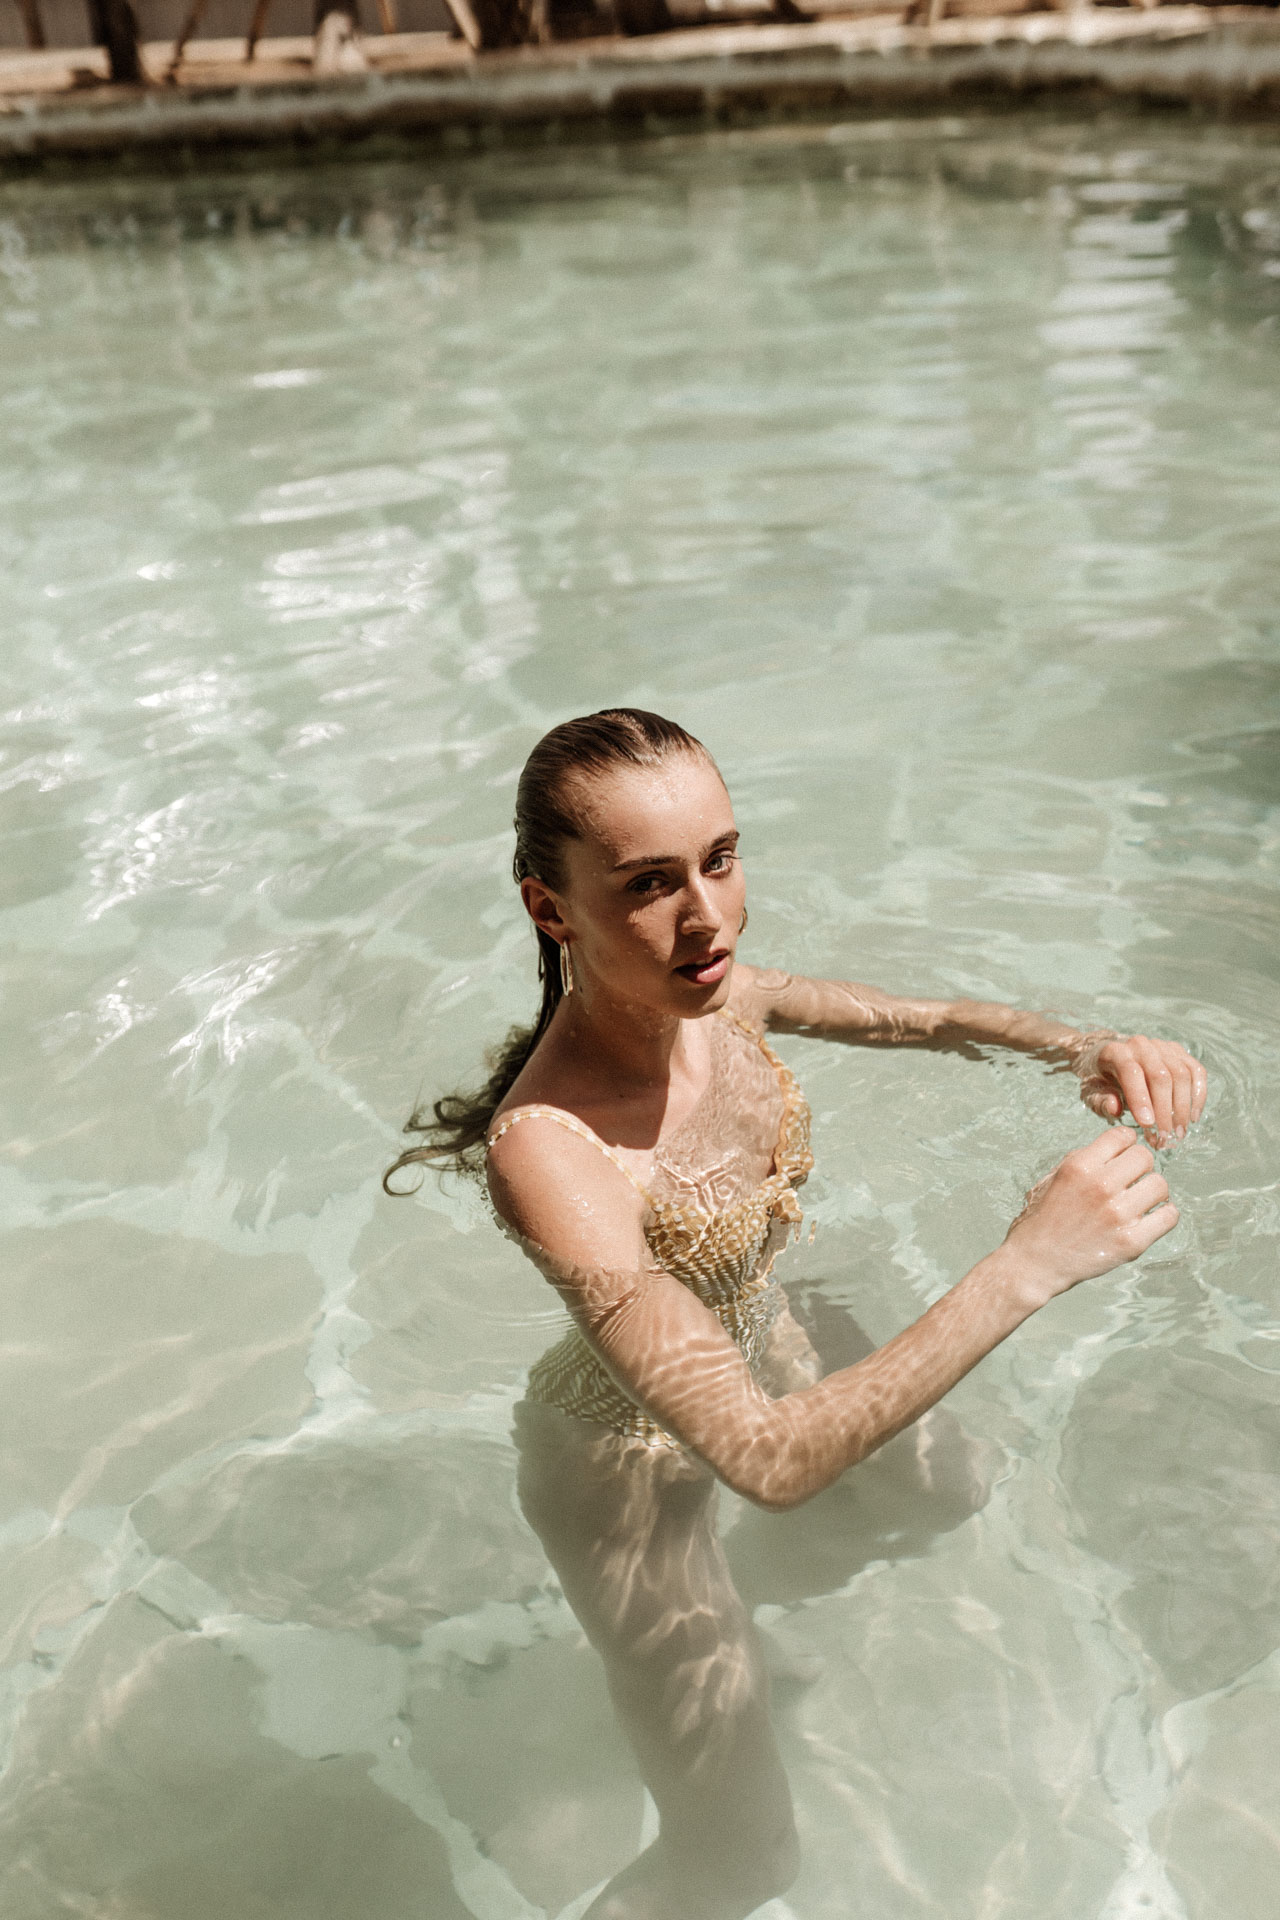 keira-mason-nordic-retreats-labrisa-in-the-pool.jpg